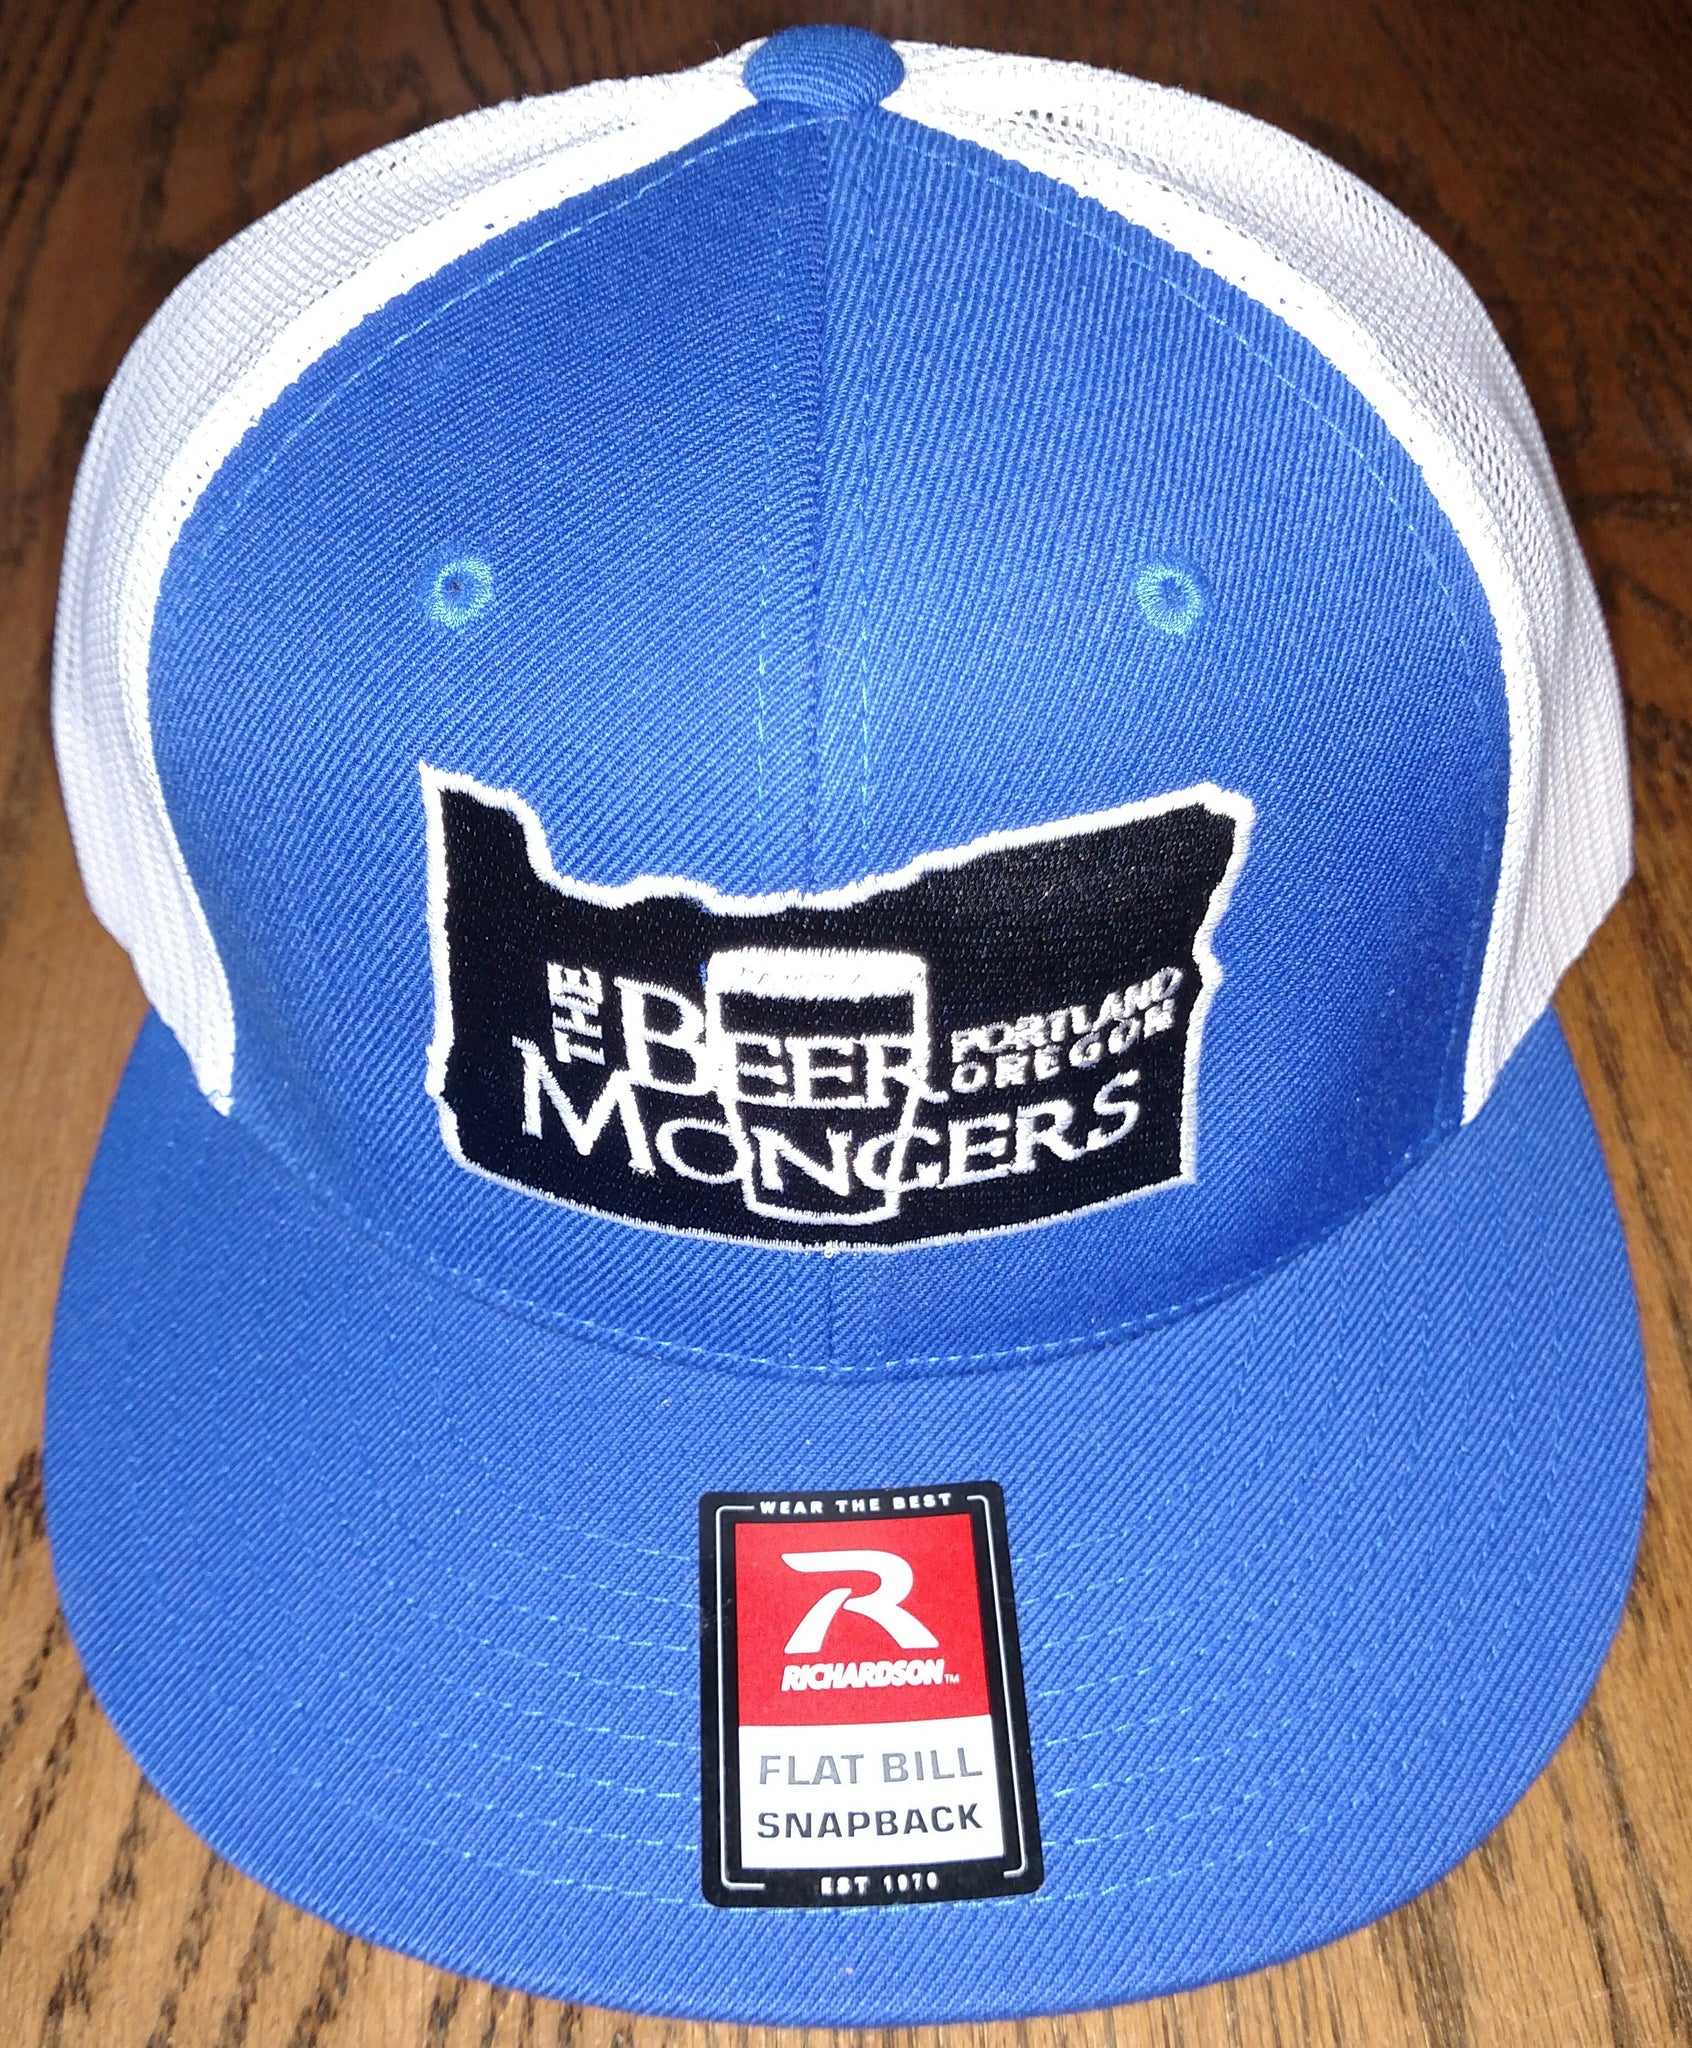 26cc5e8a36e88 The Beer Mongers Flatbill Trucker Hat (Multiple Colors) ...